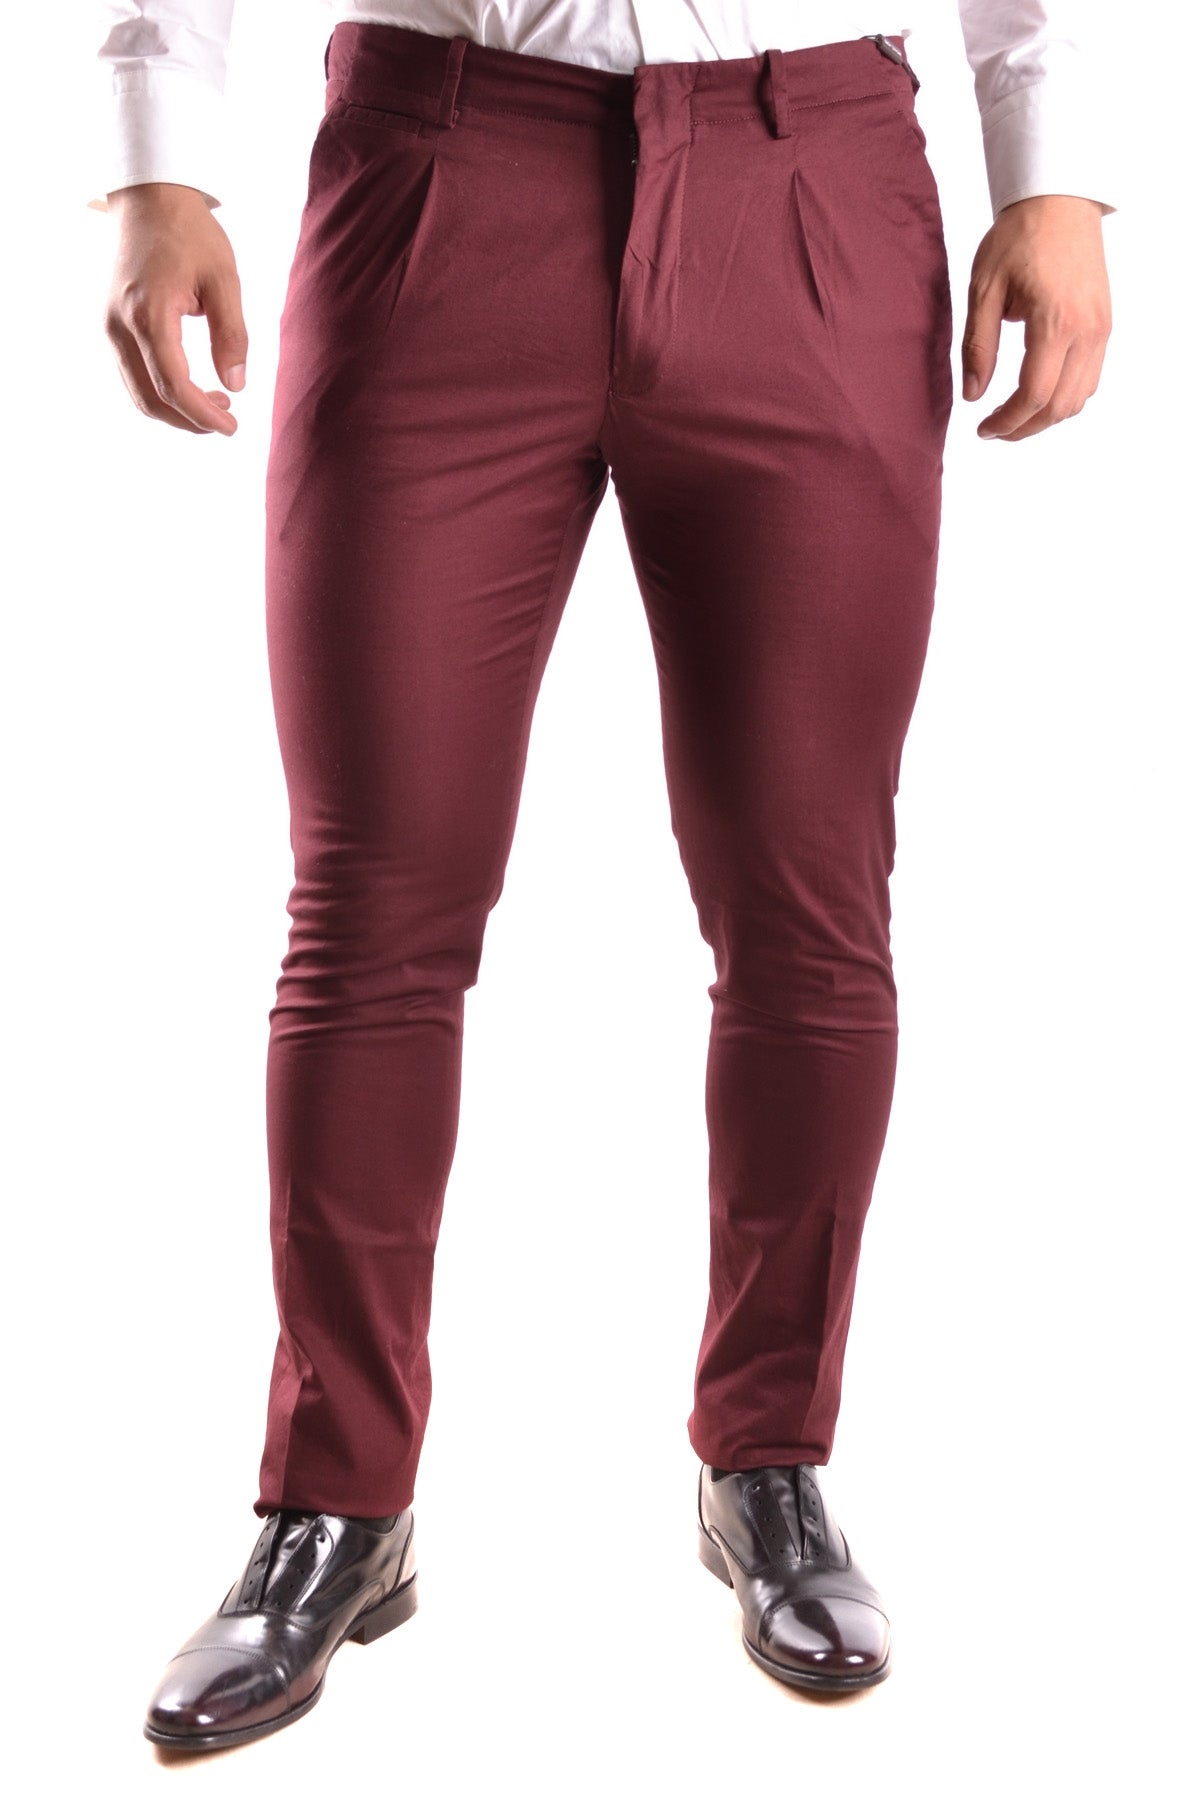 Trousers Michael Kors-Trousers - MAN-32-Product Details Terms: New With LabelYear: 2017Main Color: BurgundySeason: Spring / SummerMade In: ChinaSize: UsGender: ManClothing Type: TrousersComposition: Cotton 99%, Elastane 1%-Keyomi-Sook